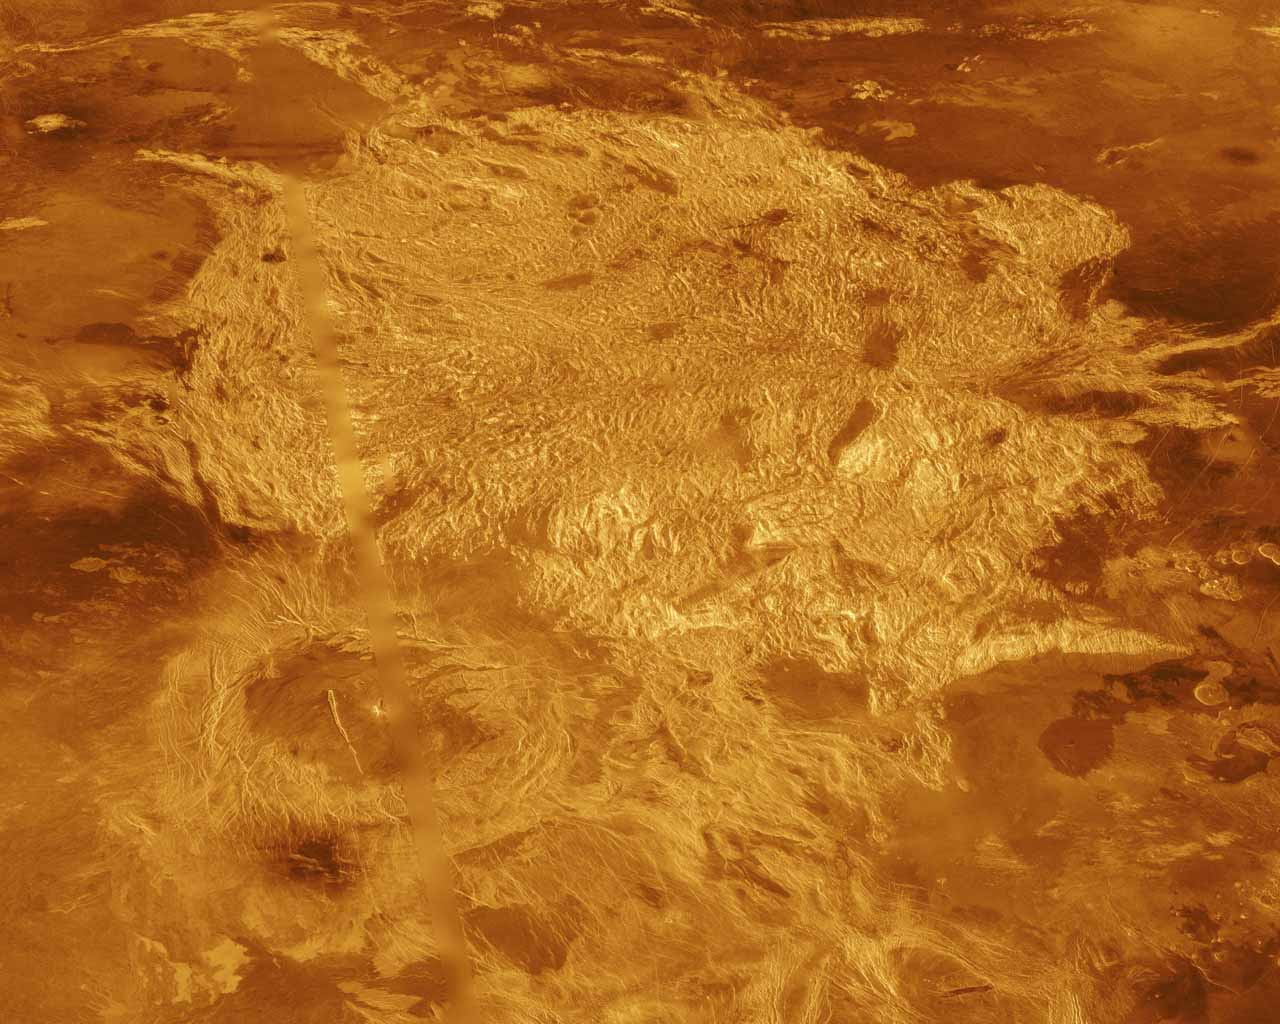 A portion of Alpha Regio is displayed in this three-dimensional perspective view of the surface of Venus from NASA's Magellan spacecraft. In 1963, Alpha Regio was the first feature on Venus to be identified from Earth-based radar.